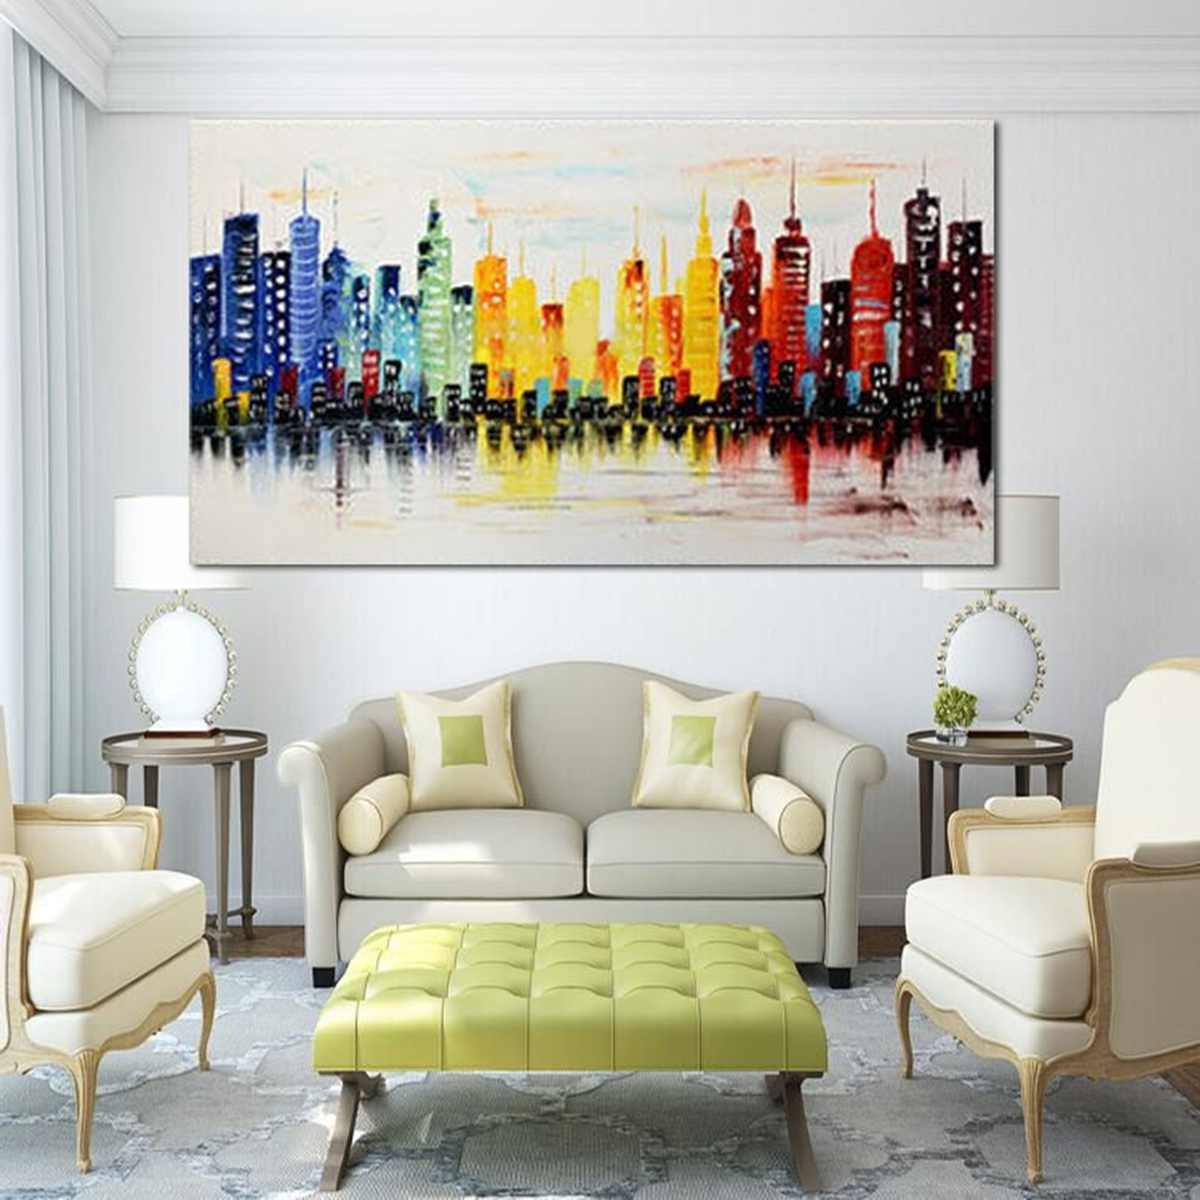 120X60Cm Modern City Canvas Abstract Painting Print Living Room Art With Regard To Recent Art Wall Decor (Gallery 8 of 15)